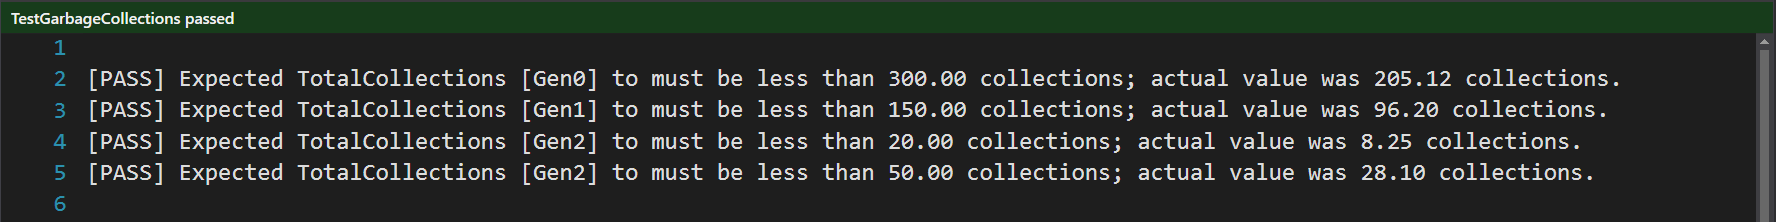 Messaged from passed NBench tests